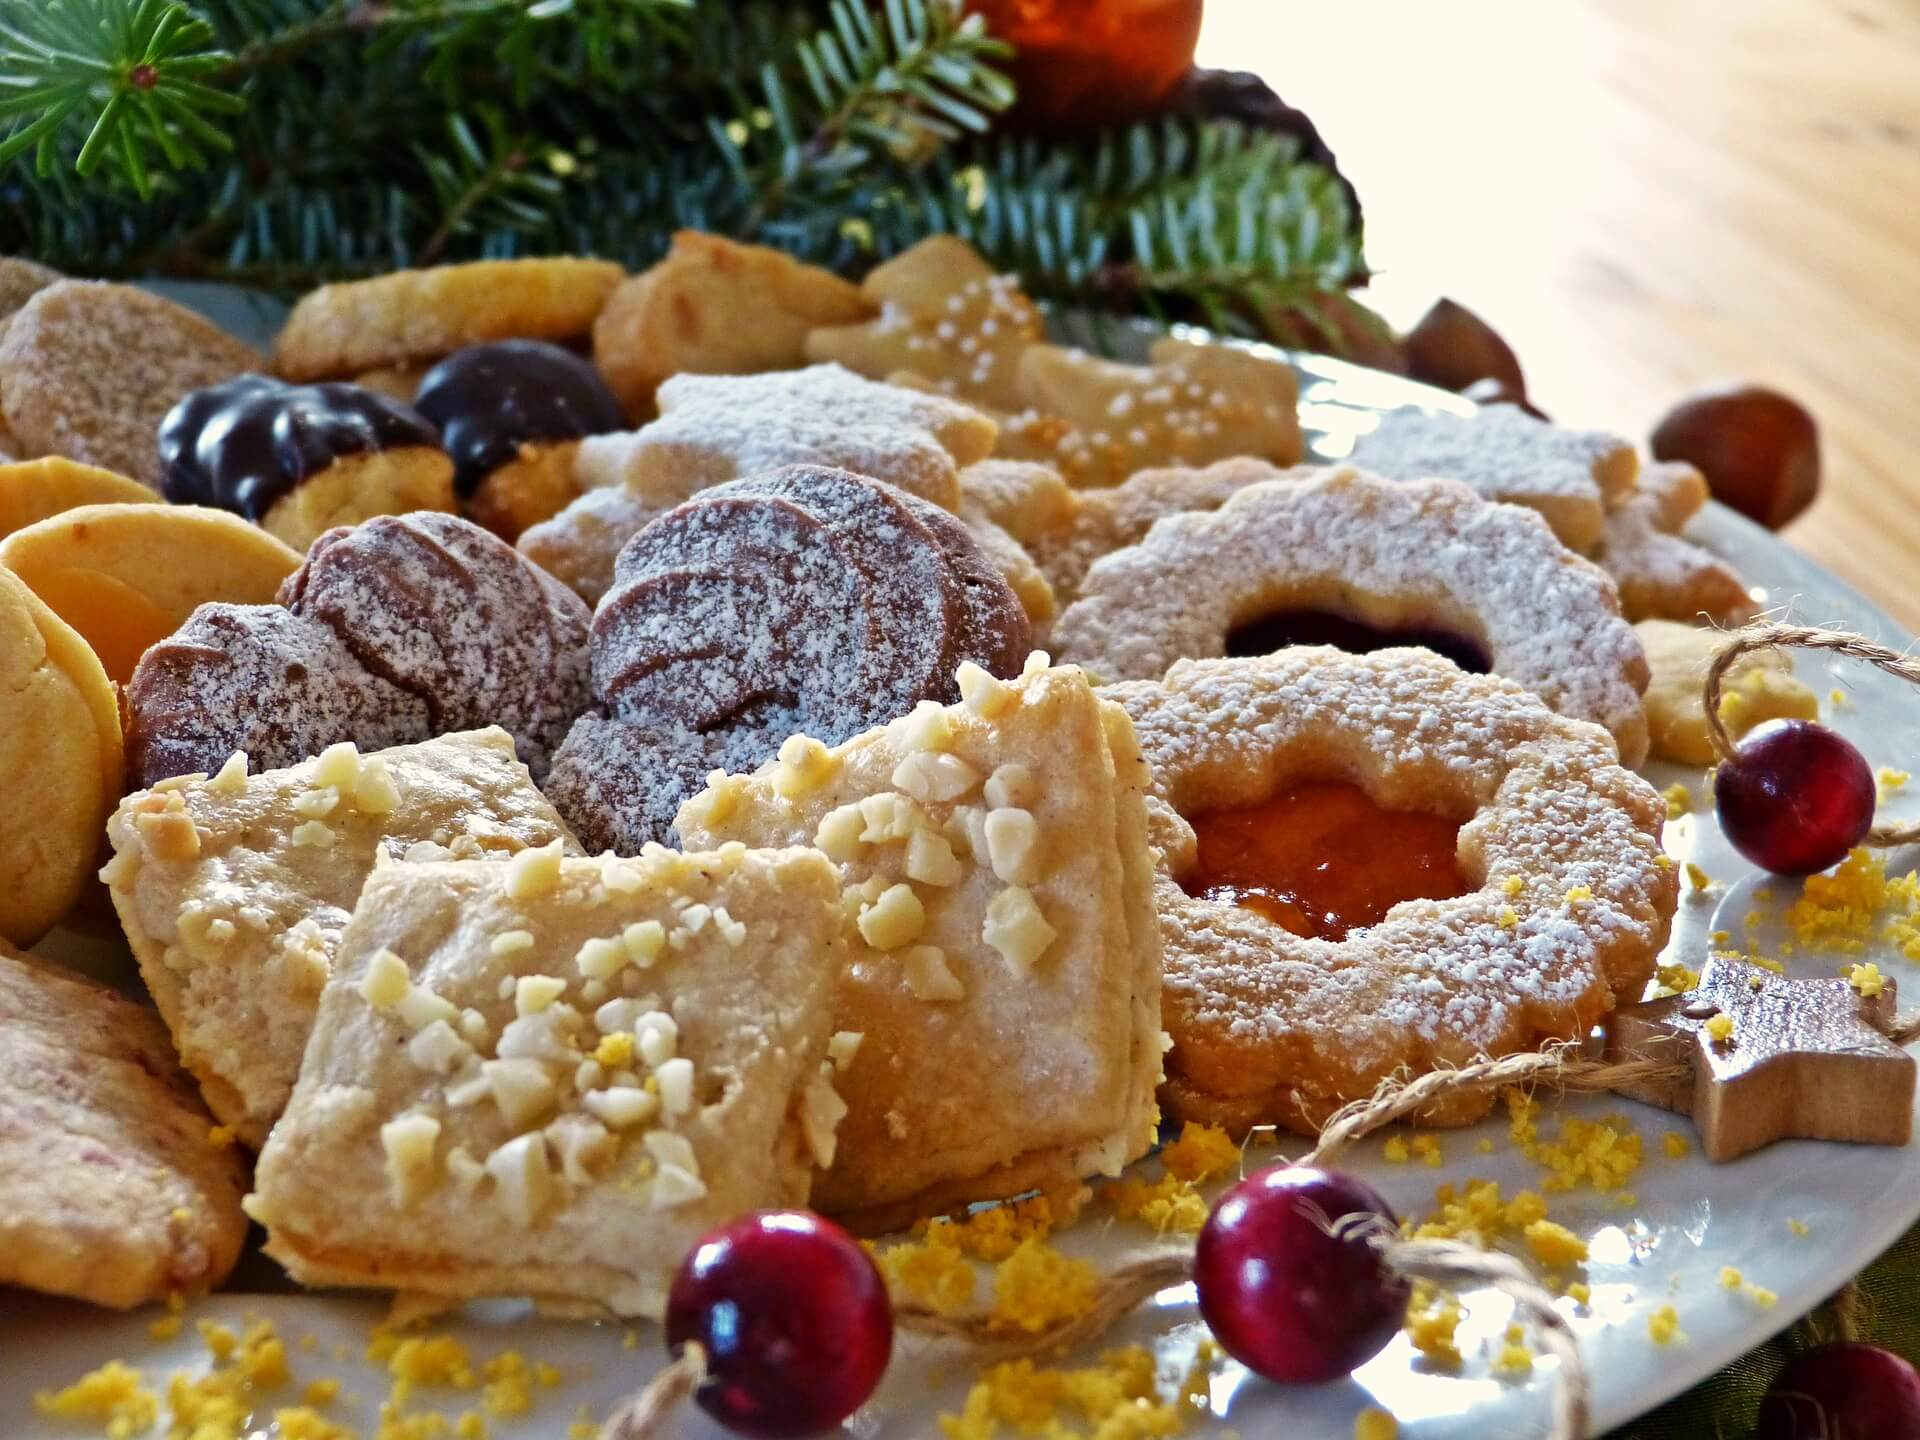 All the goodies at the holidays can challenge any weight loss program